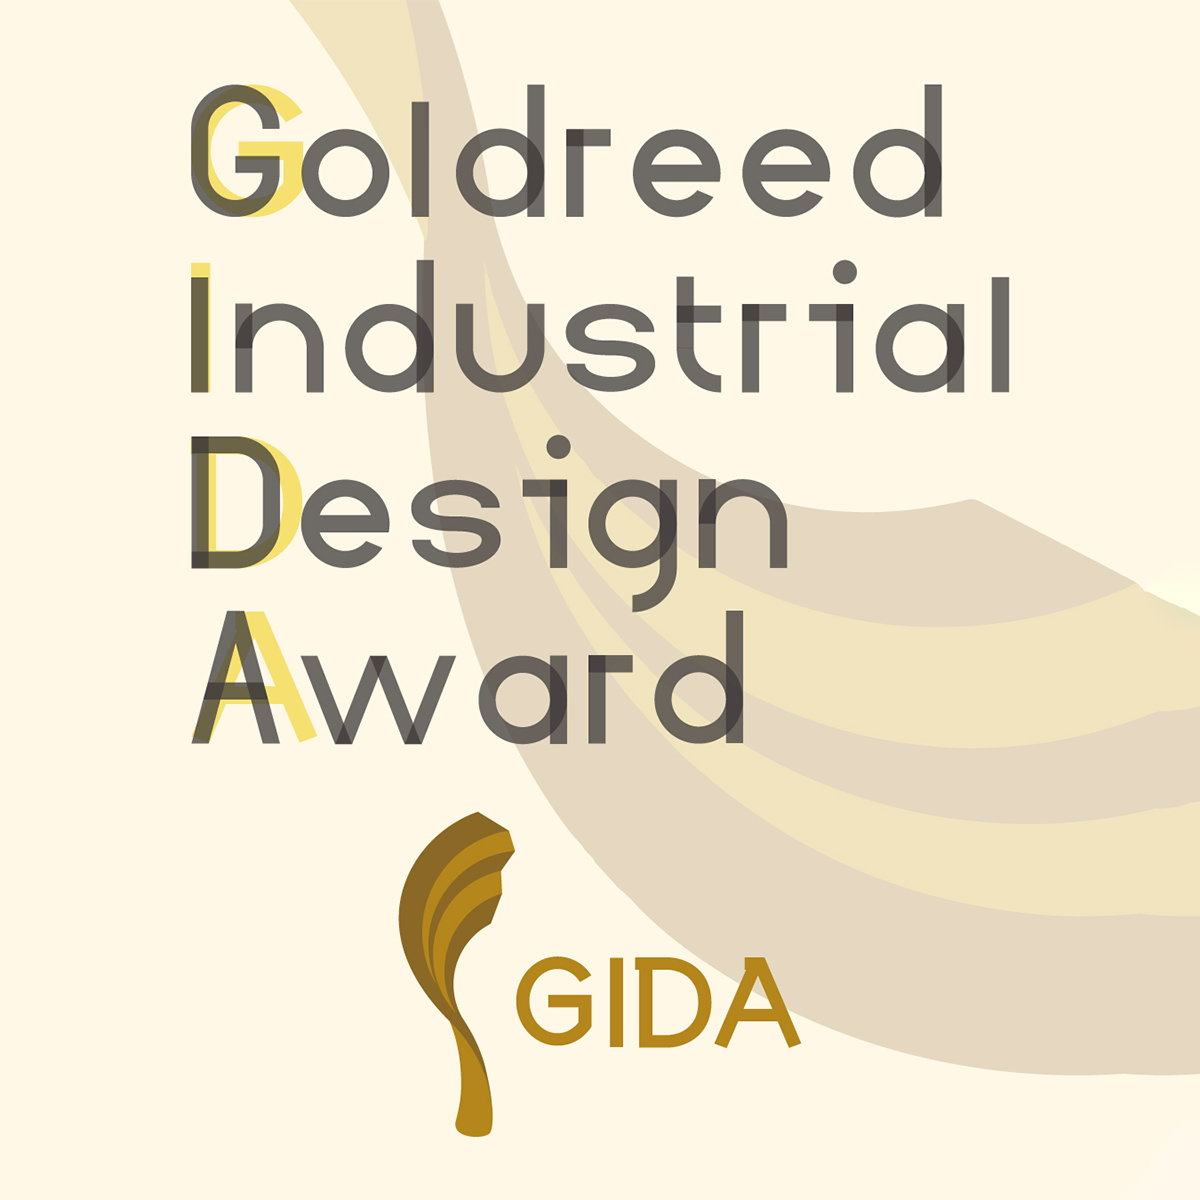 Goldreed Industrial Design Award 2020